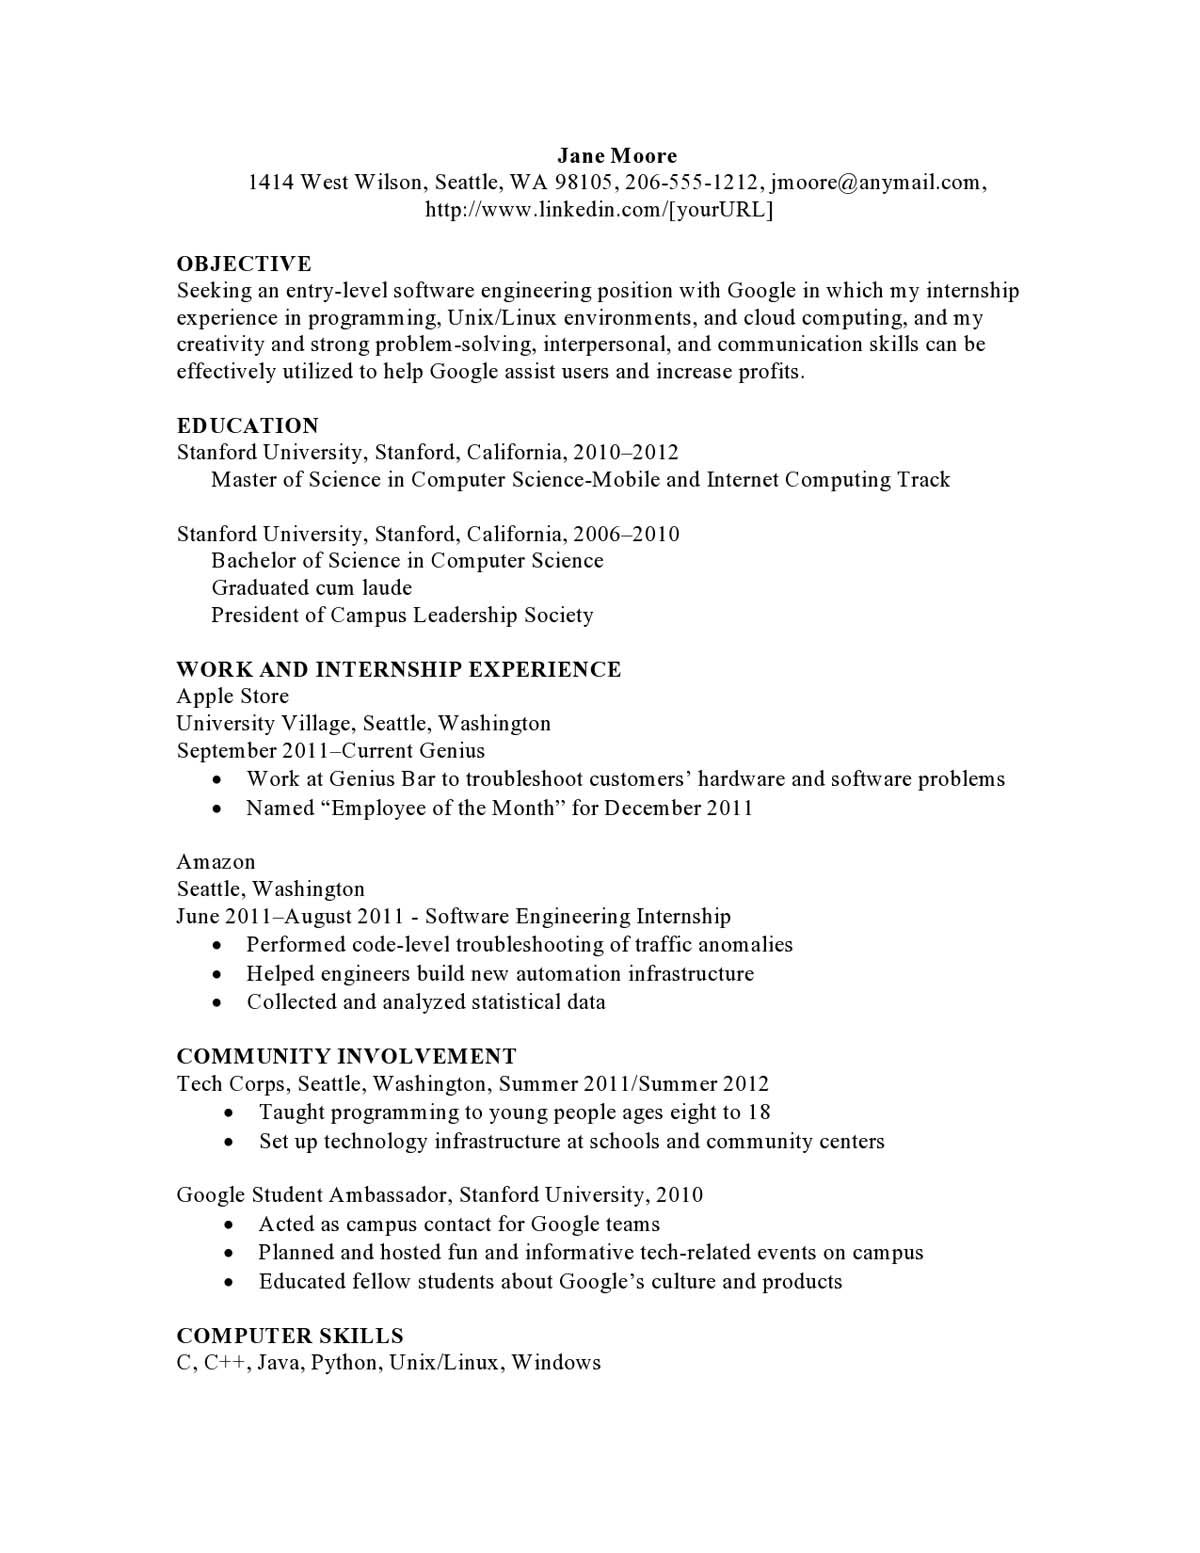 Apple Store Resume Custom Computer Software Entry Level Combination Resume  Get Ahead .